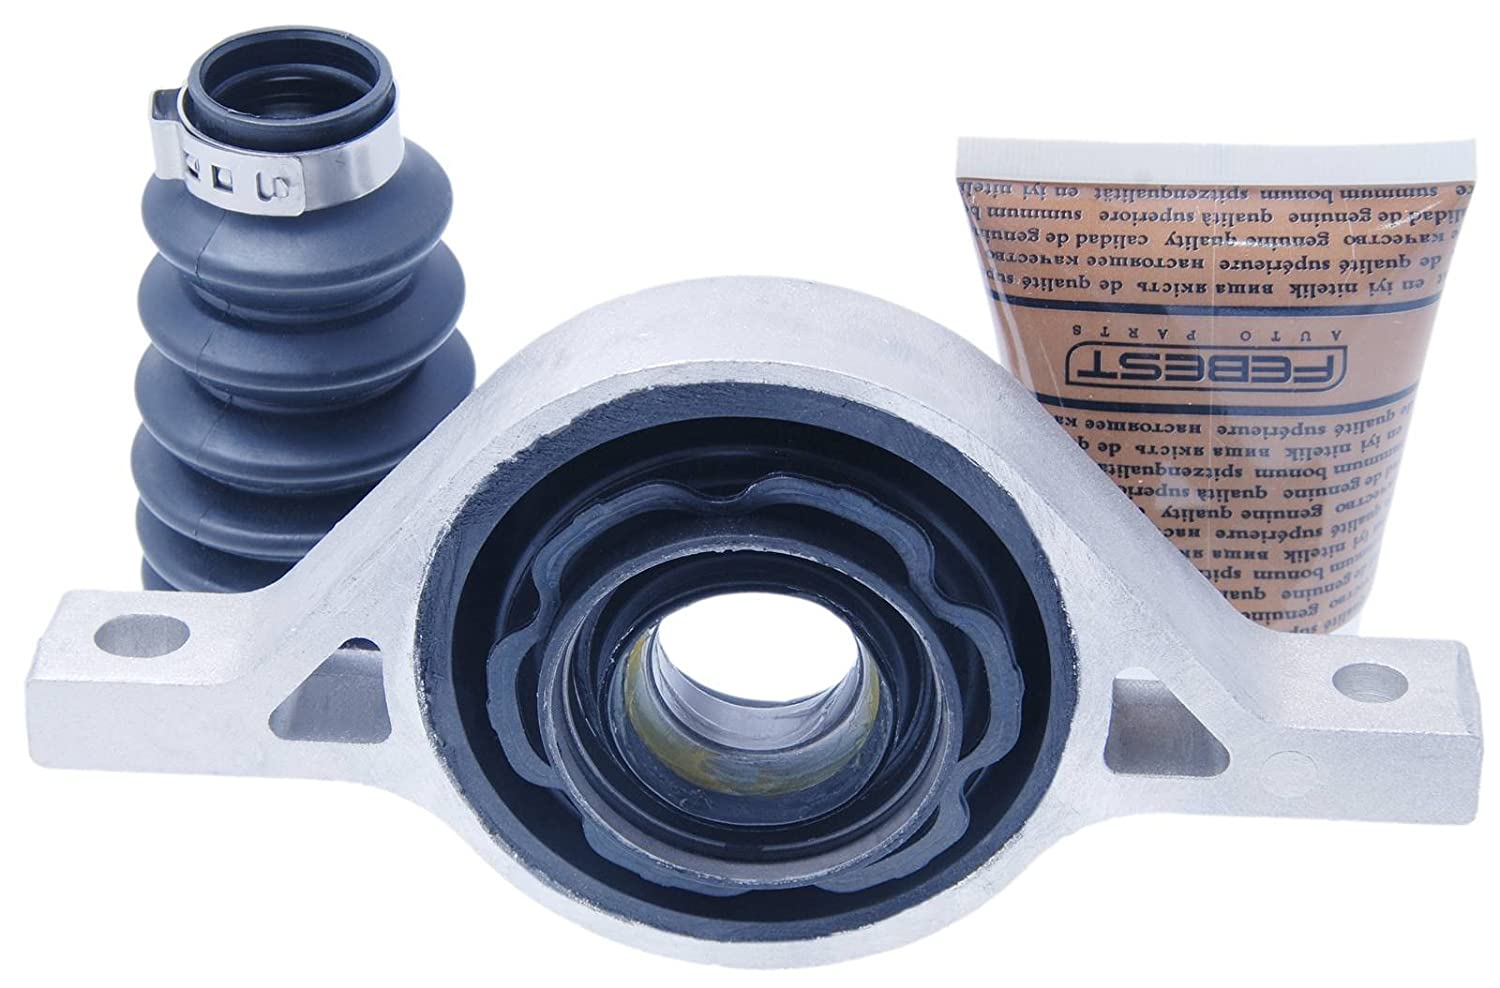 49575-2P000 / 495752P000 - Center Bearing Support For Hyundai/Kia Febest